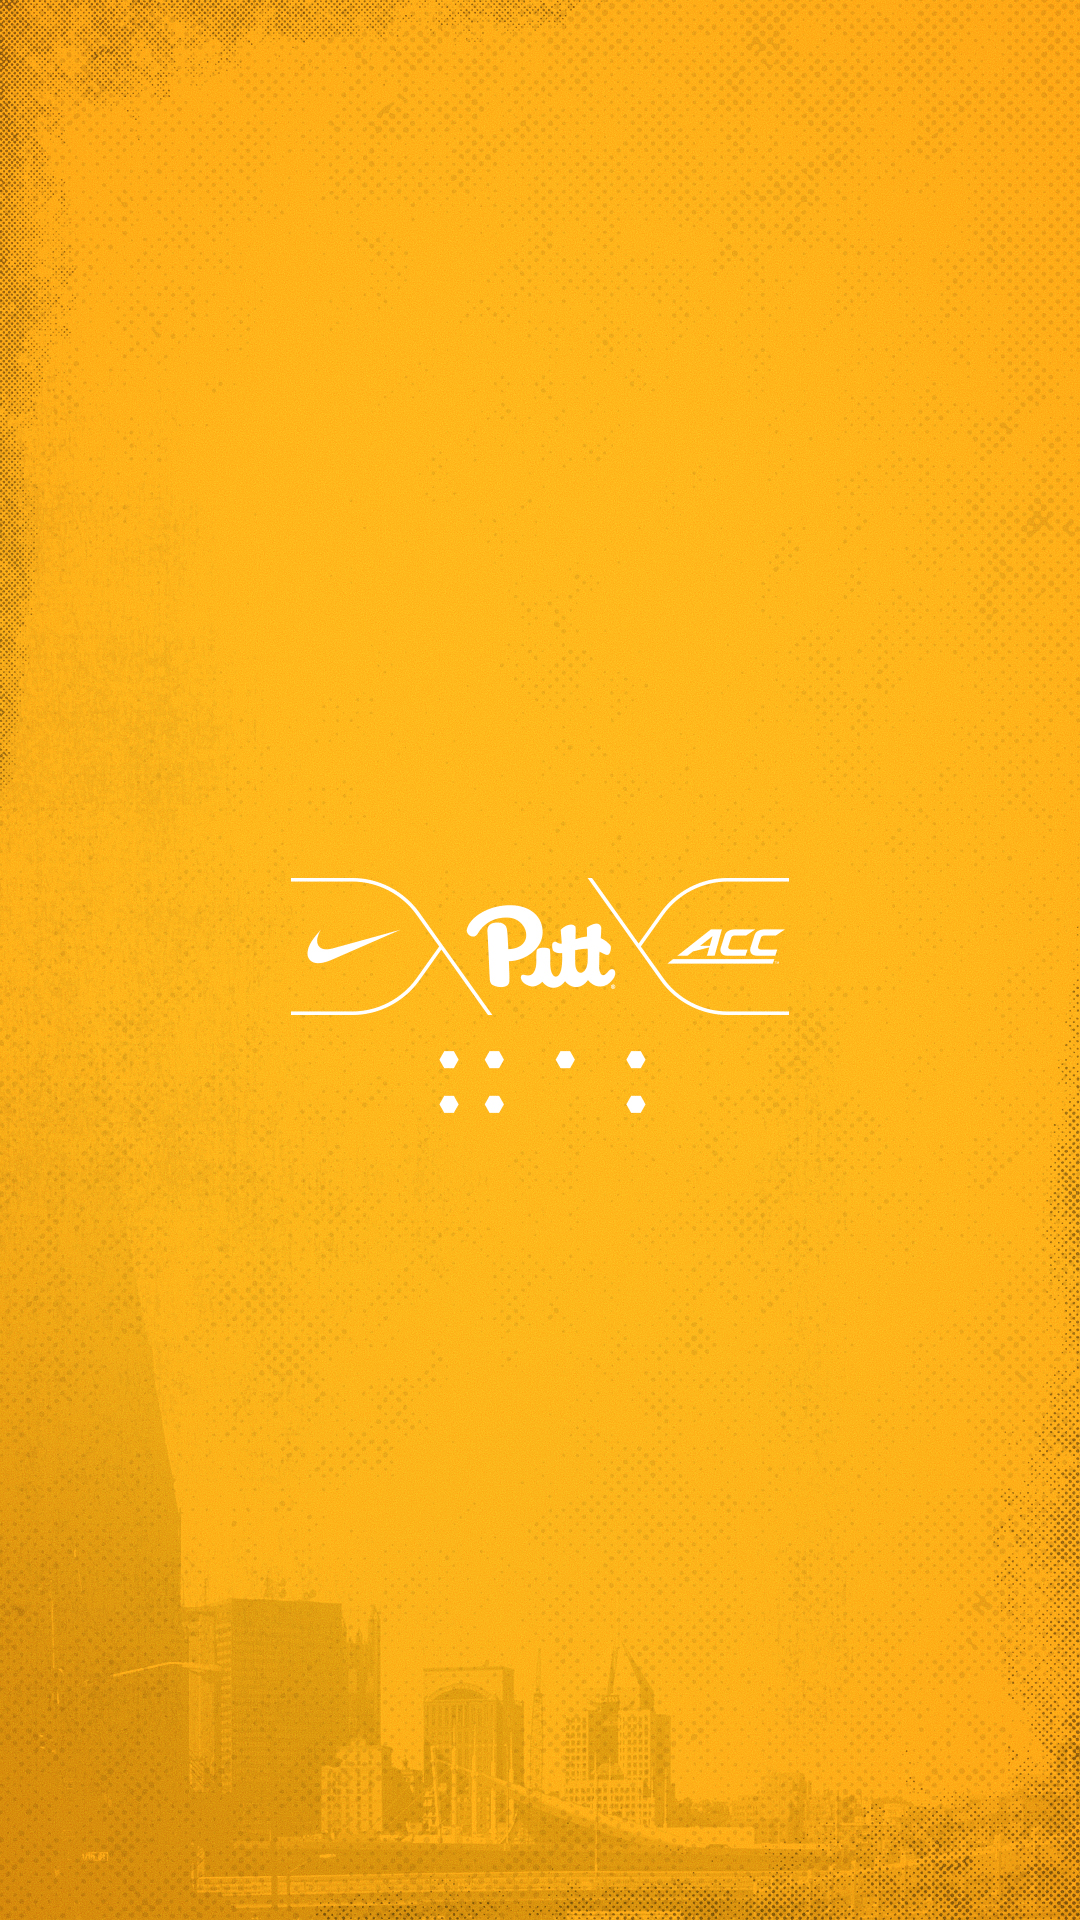 Wallpaper: Mobile and Desktop - Pitt